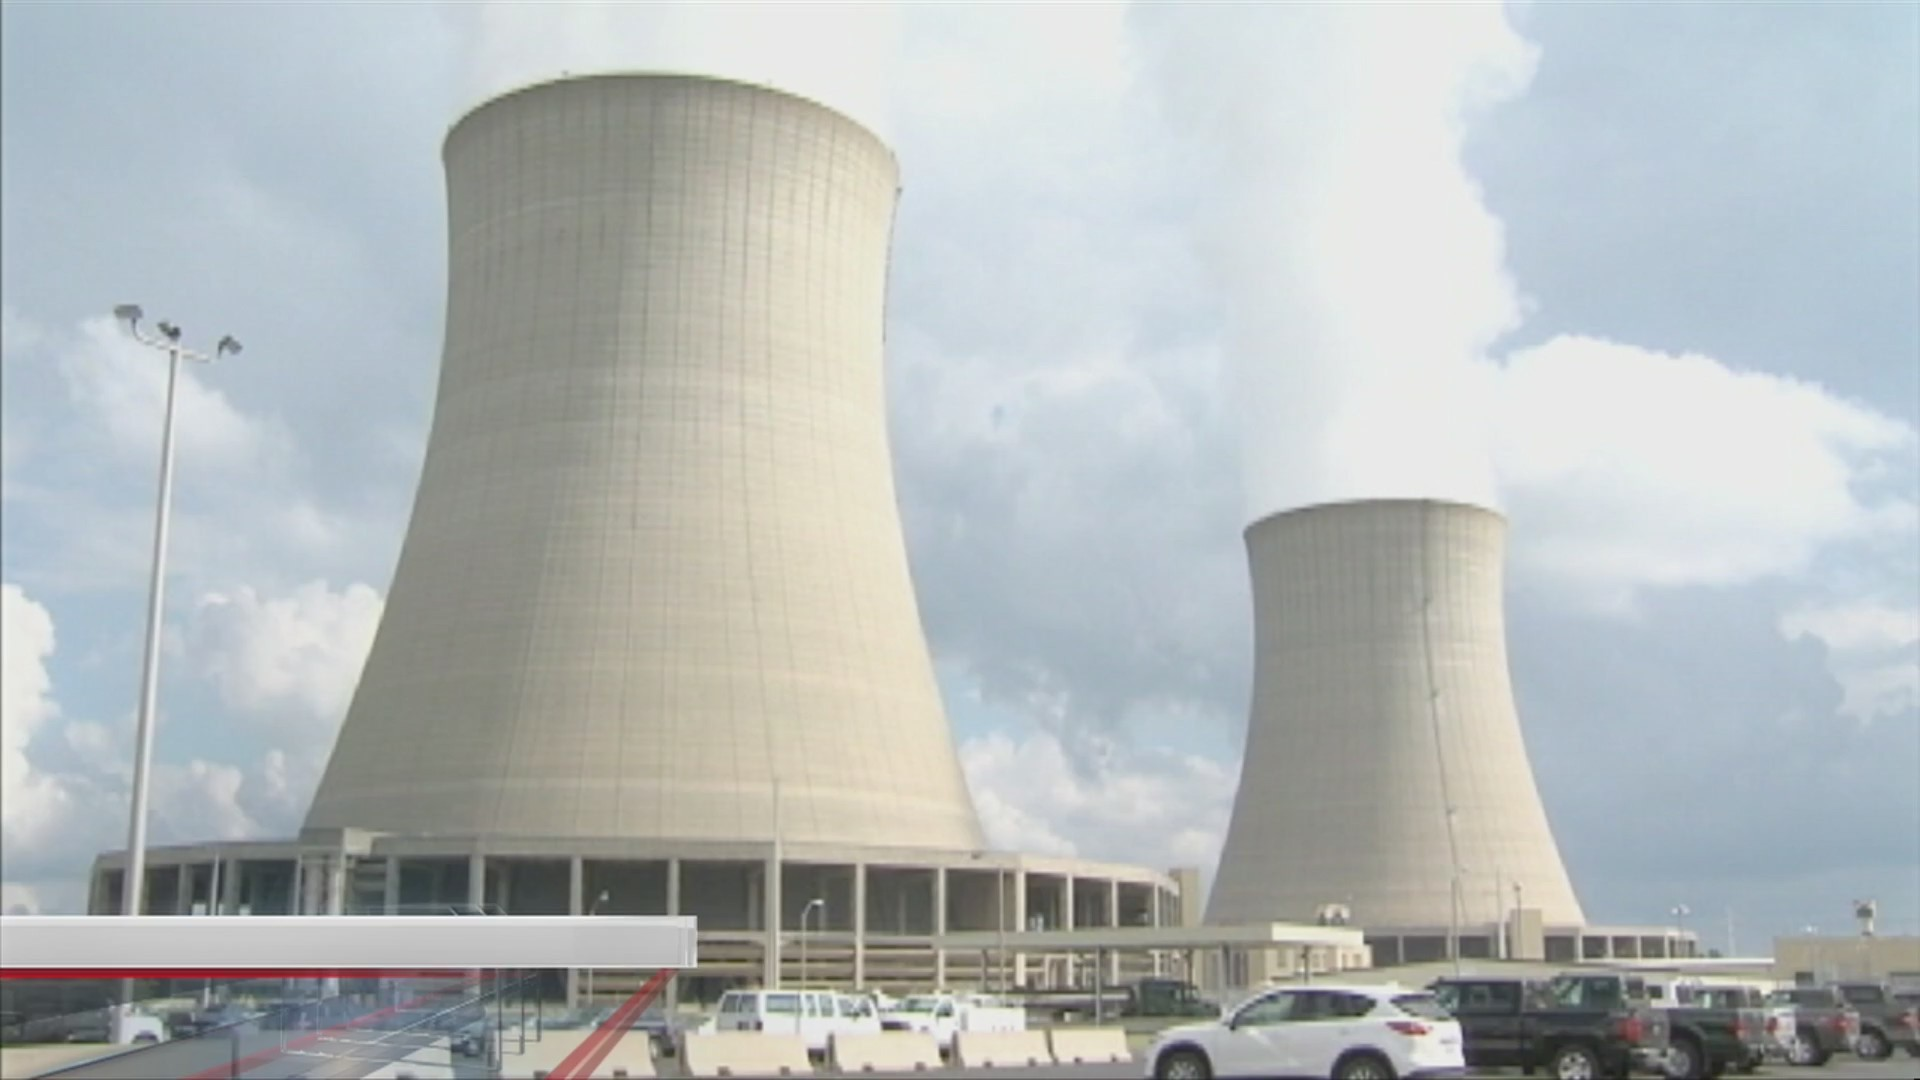 Byron Nuclear Power Plant bringing in 4,200 workers for annual refueling